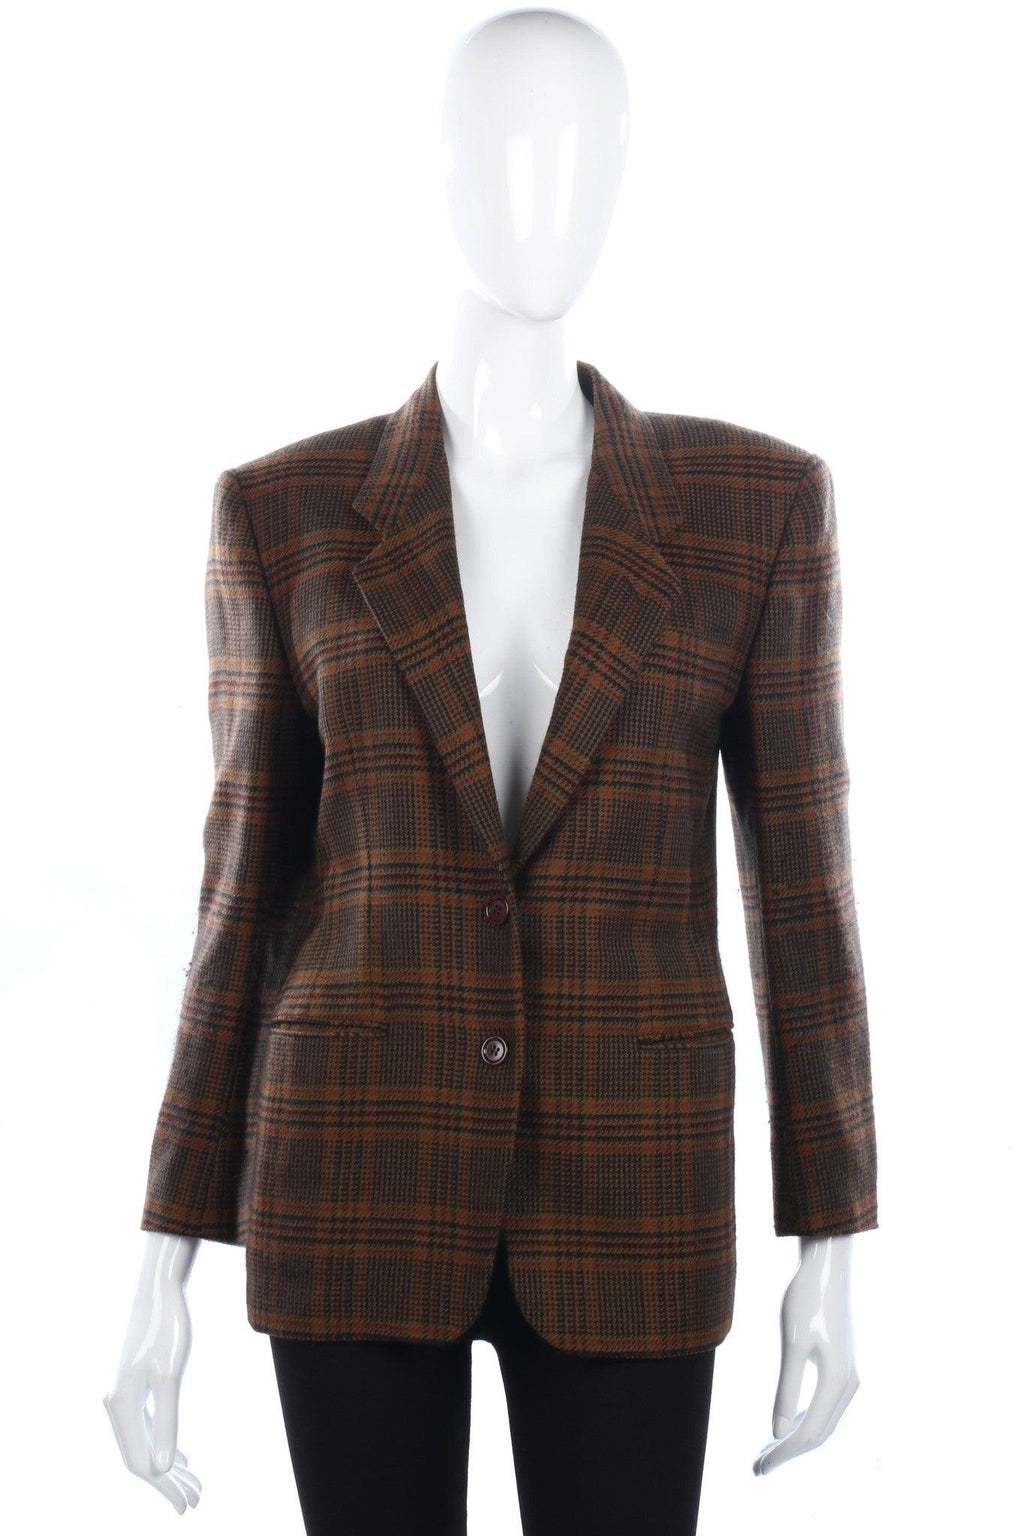 Antonio Fusco Jacket Fine Wool Brown Check Size M